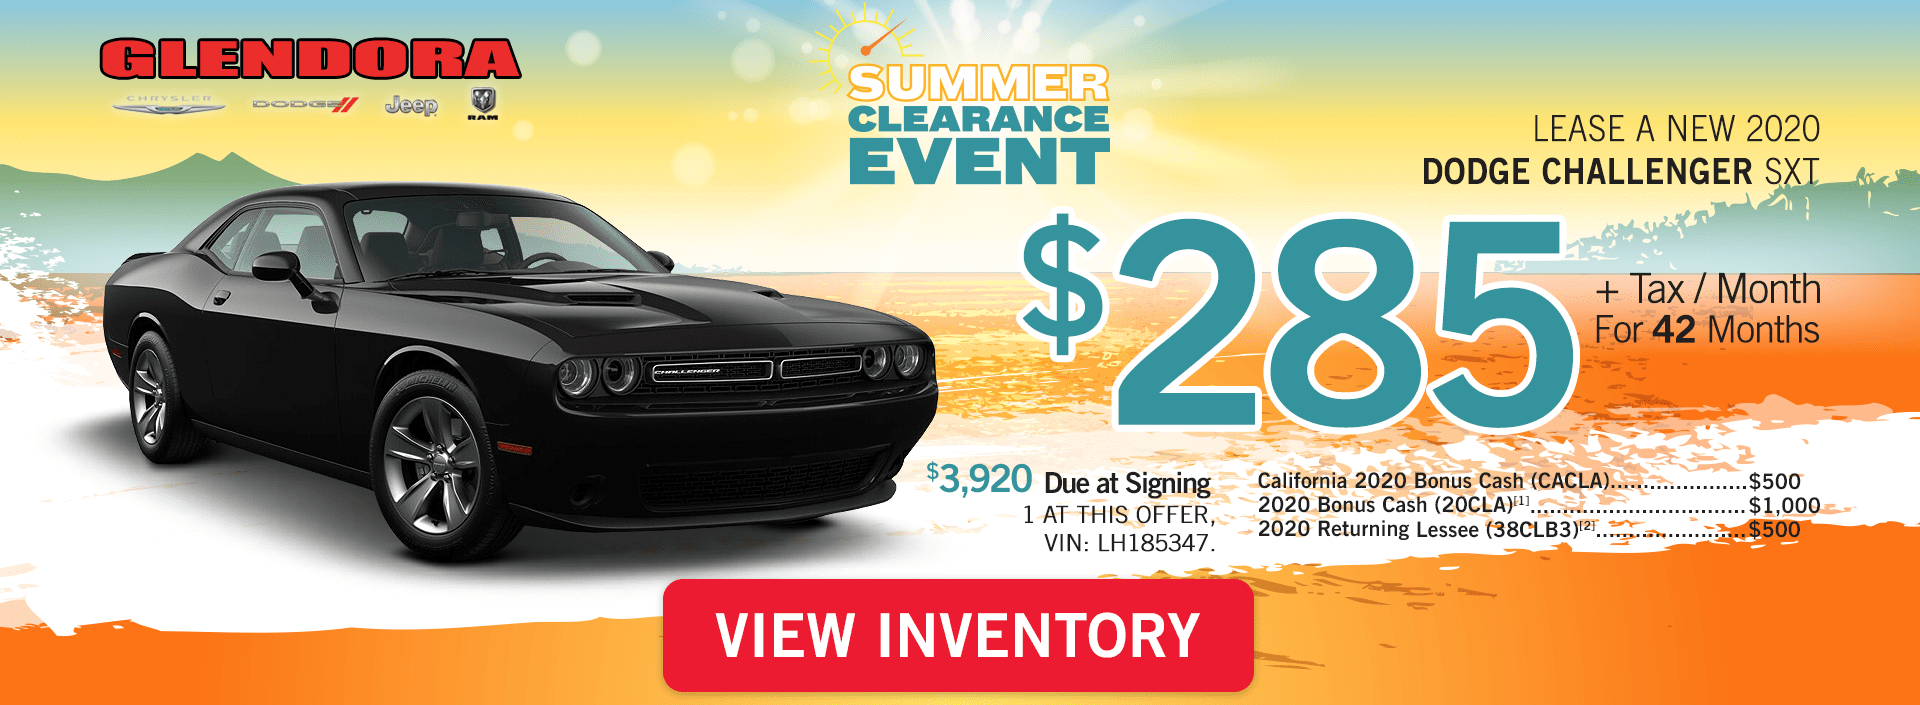 Dodge Challenger Lease Special